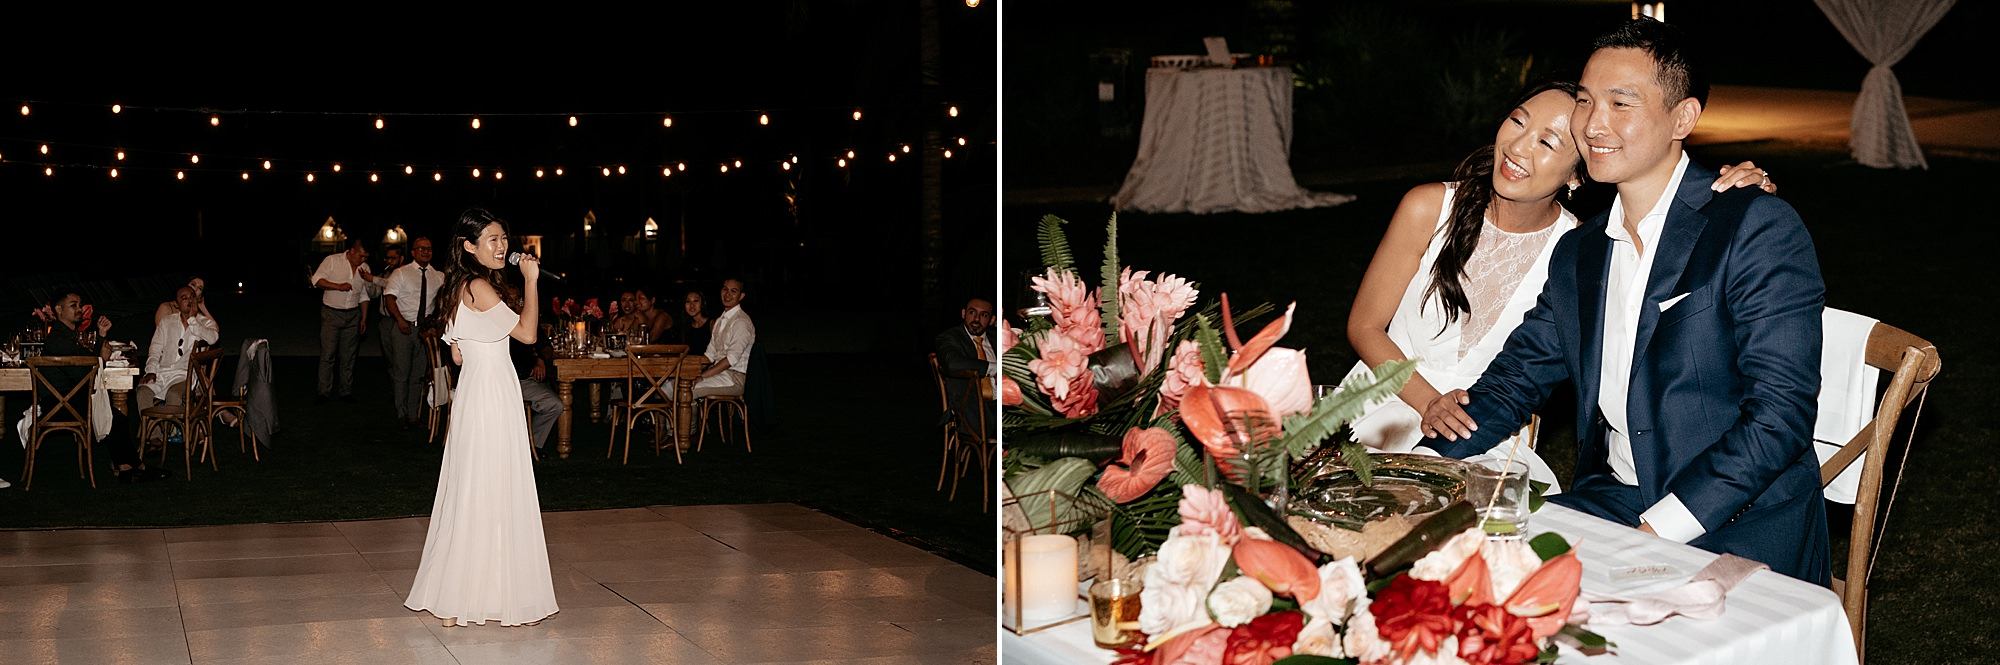 natural weddding photographer bahamas lux 0114 1